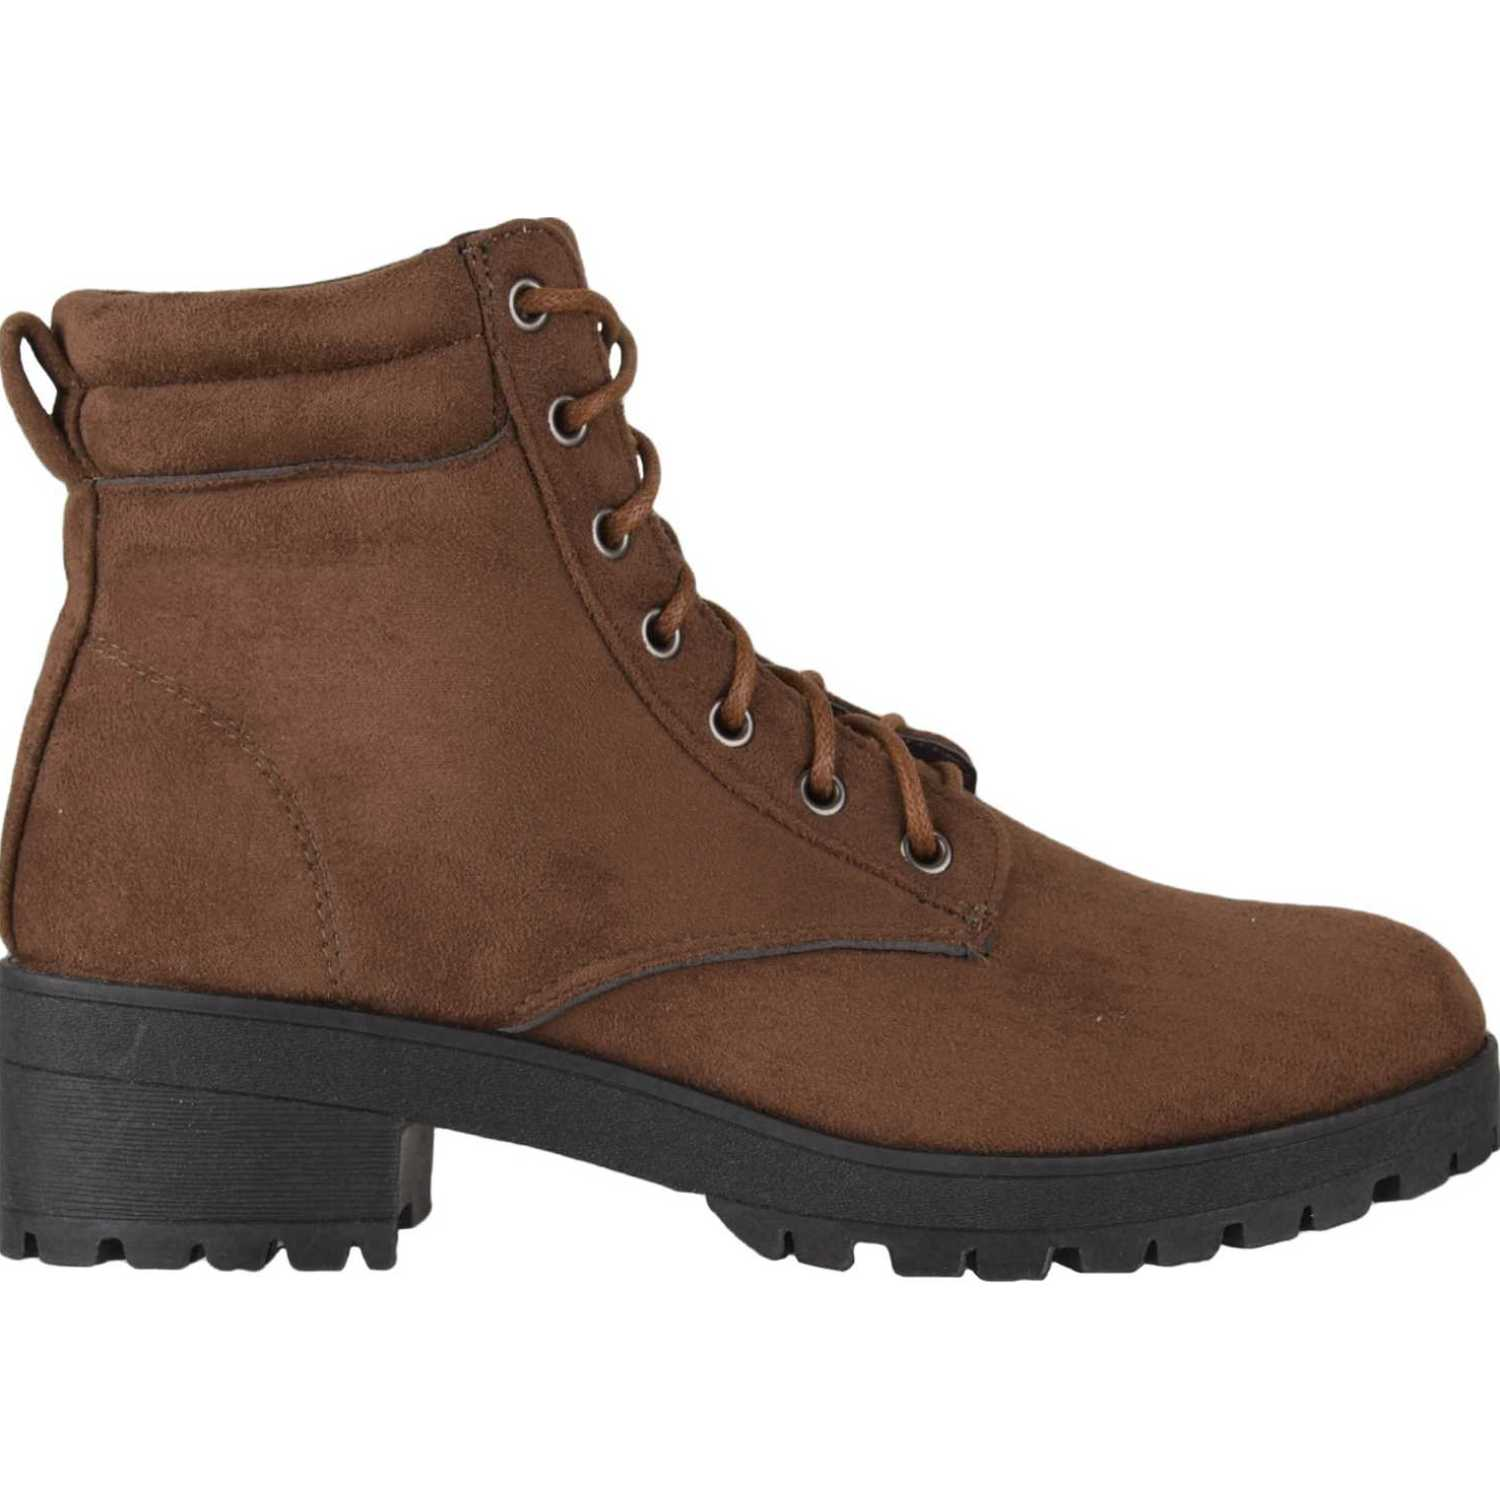 Platanitos bt 4101 Marron Botines